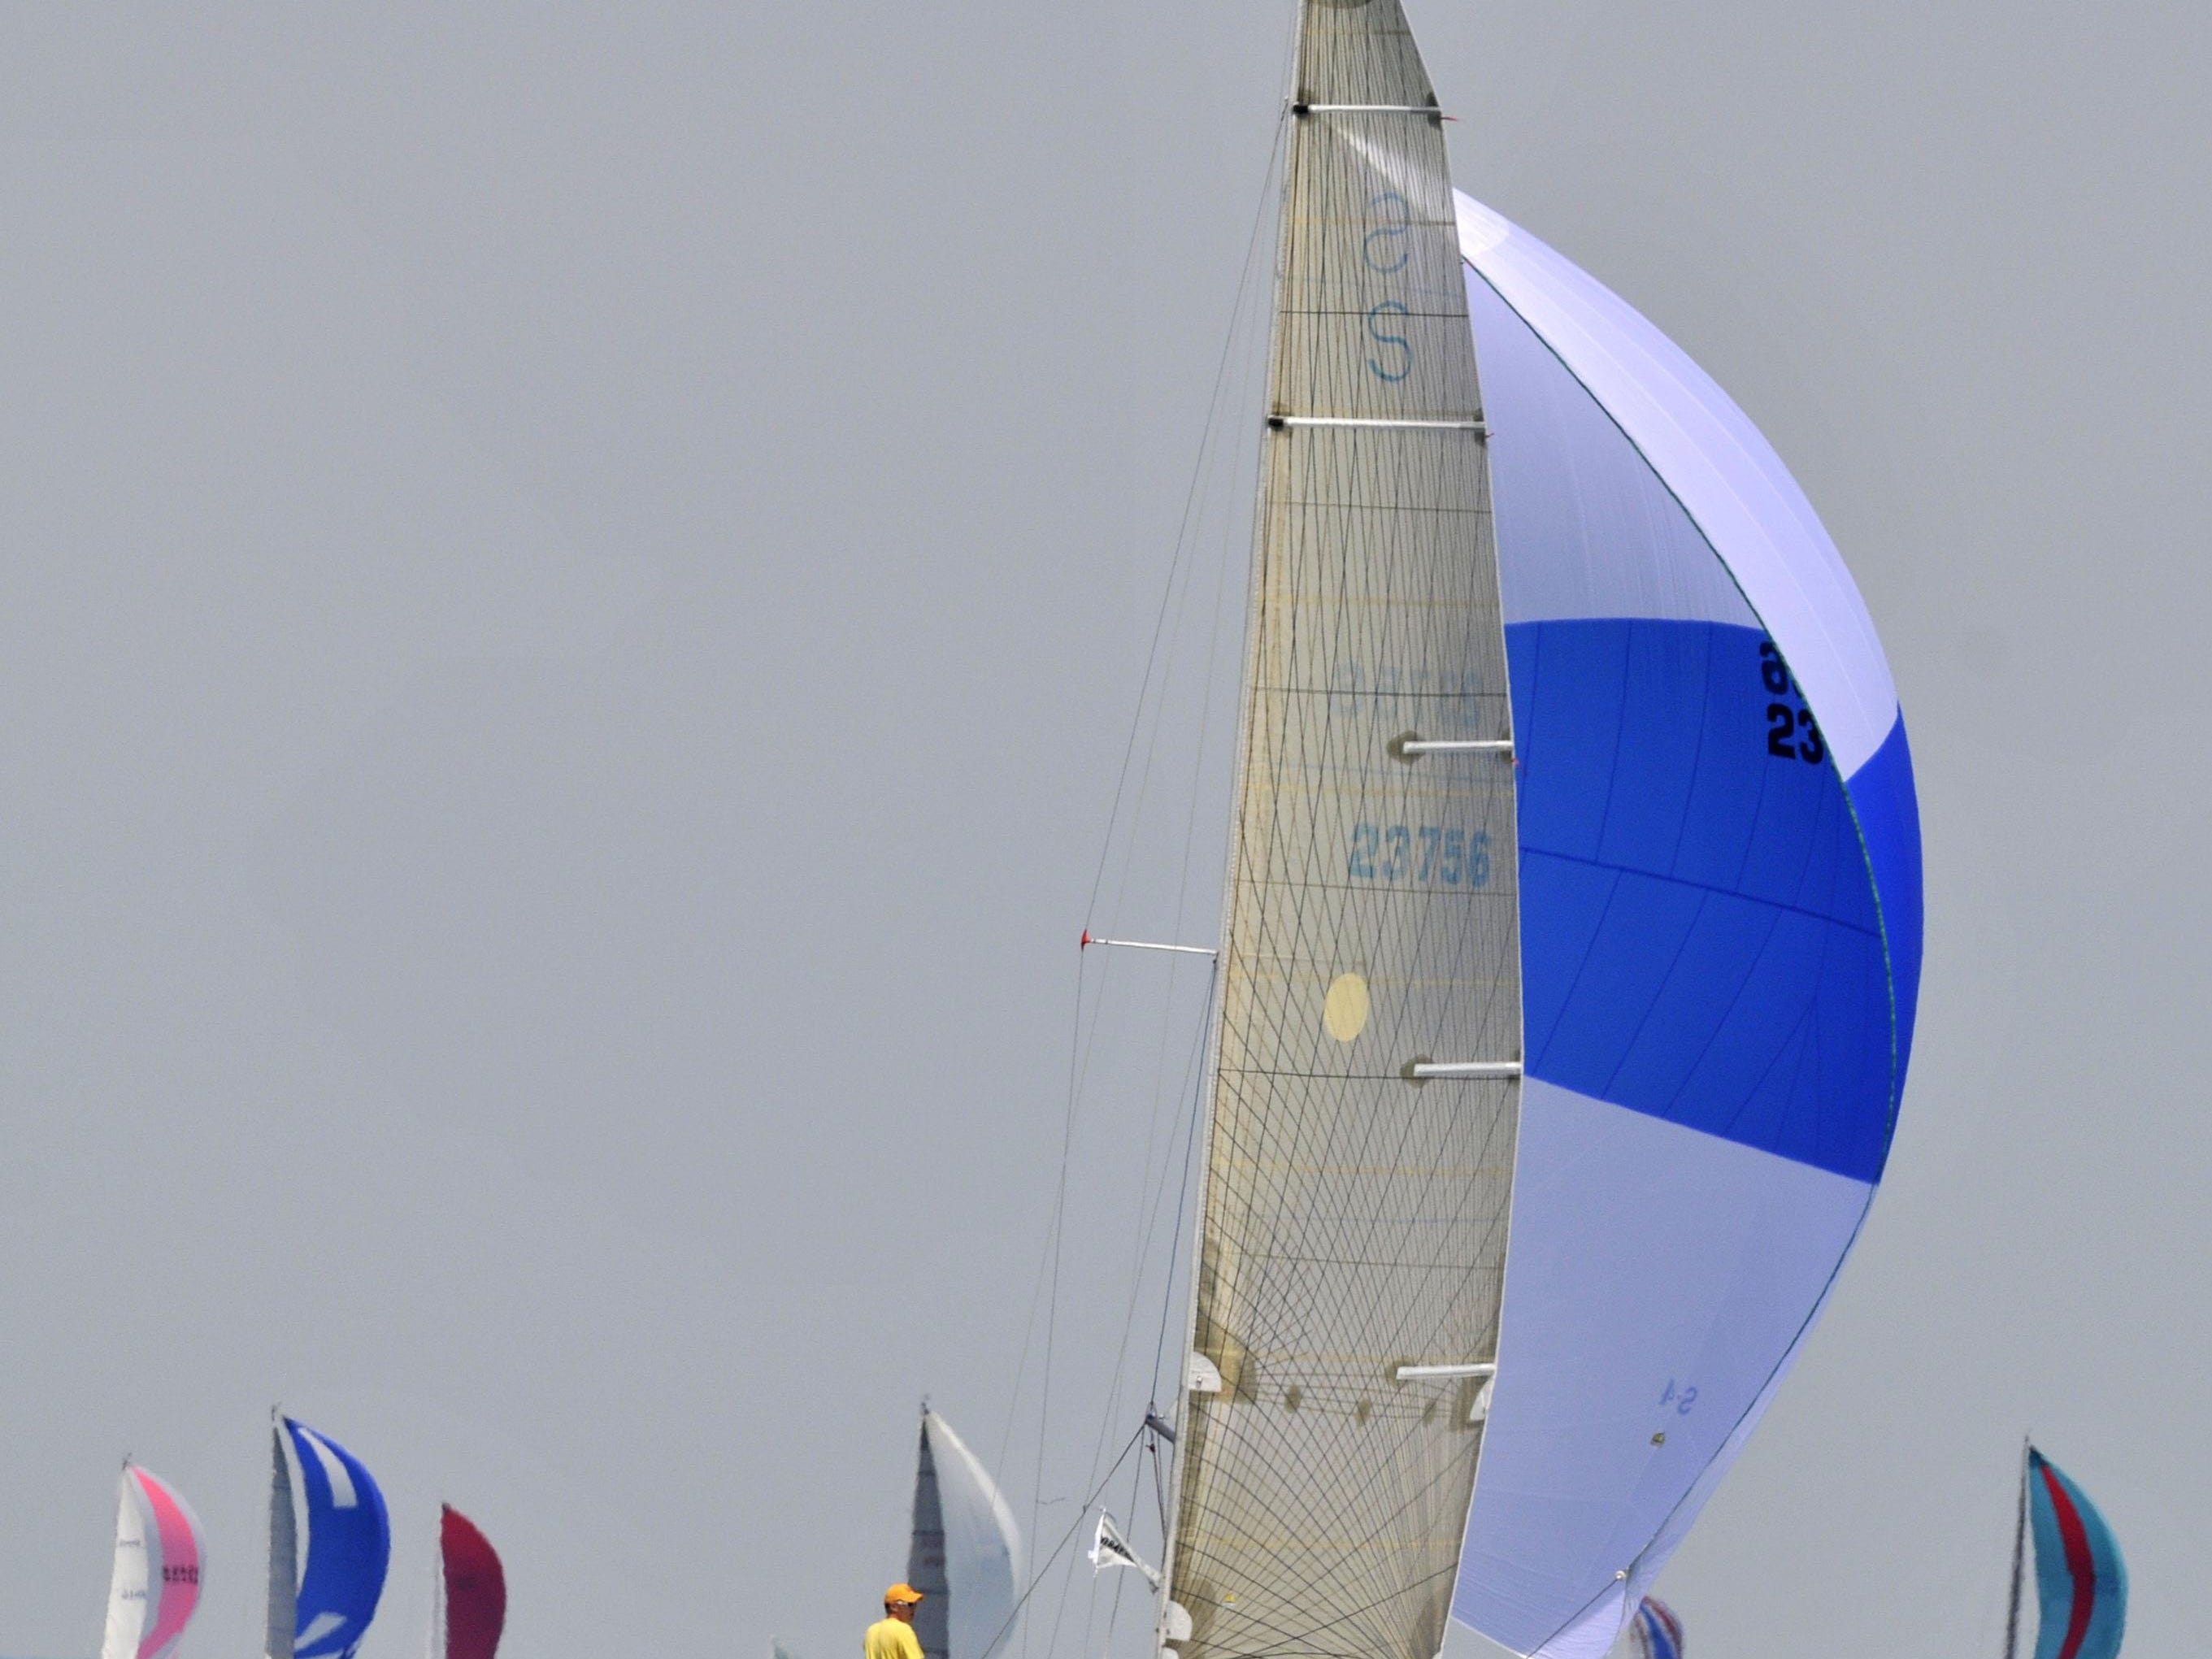 Shape, sailing out of the Port Huron Yacht Club, took first place not only in its class and division, but also for the Shore Course overall in the 2014 sailboat race from Port Huron to Mackinac Island. This year, its rating allows it to stay on the Shore Course.